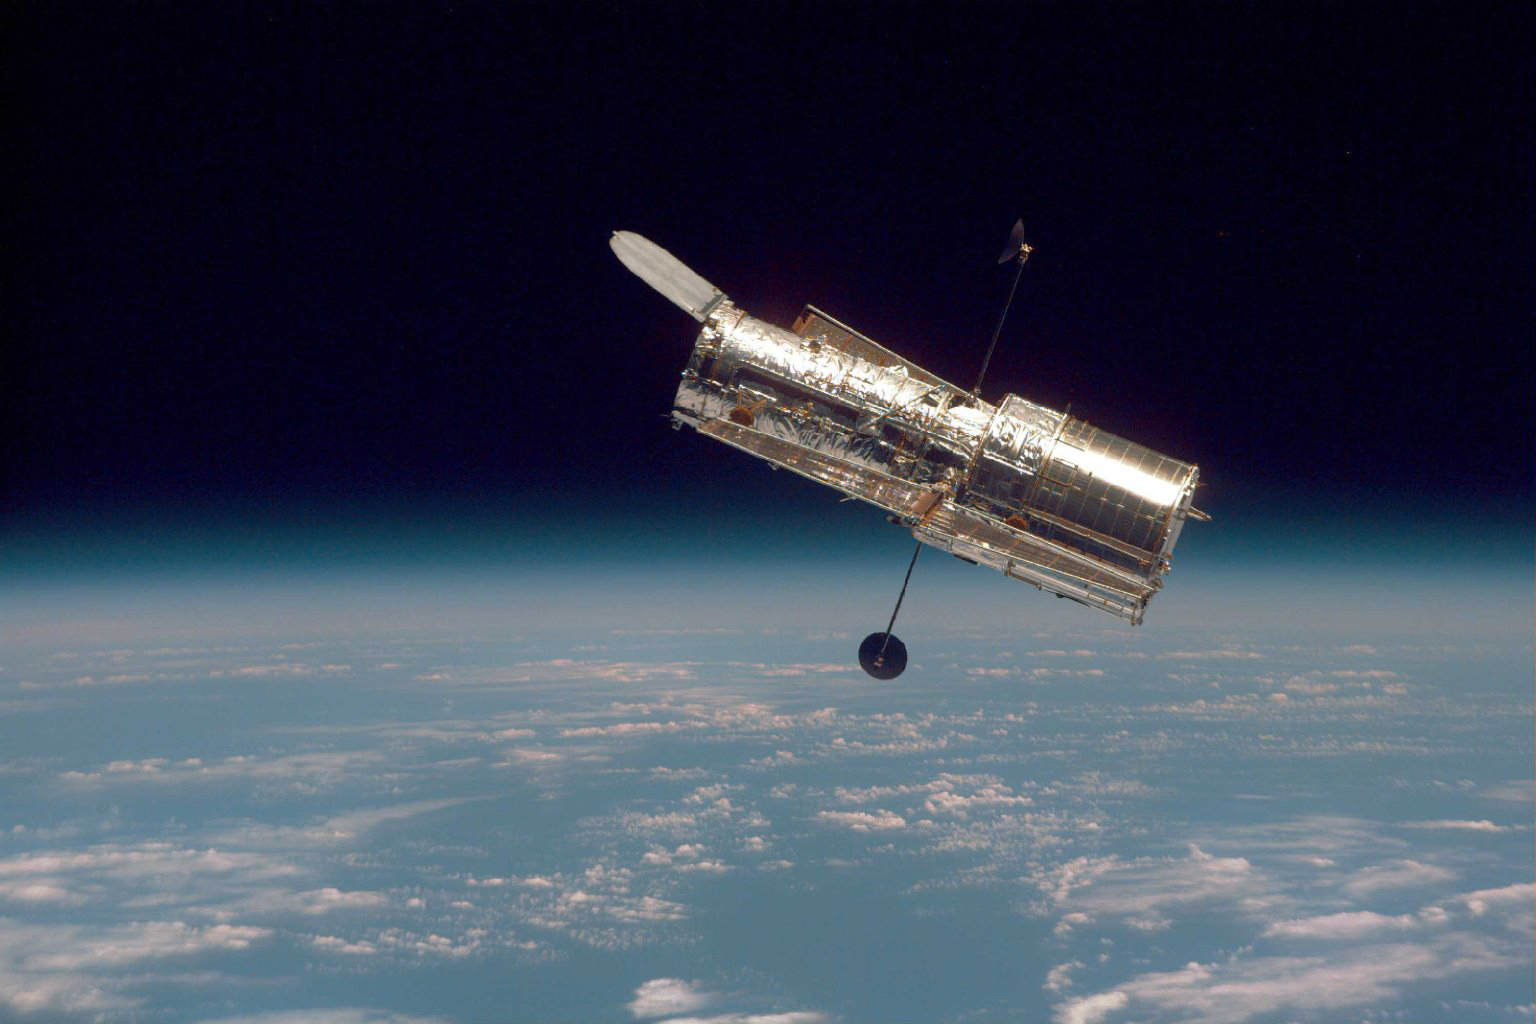 About the Hubble Space Telescope | NASA